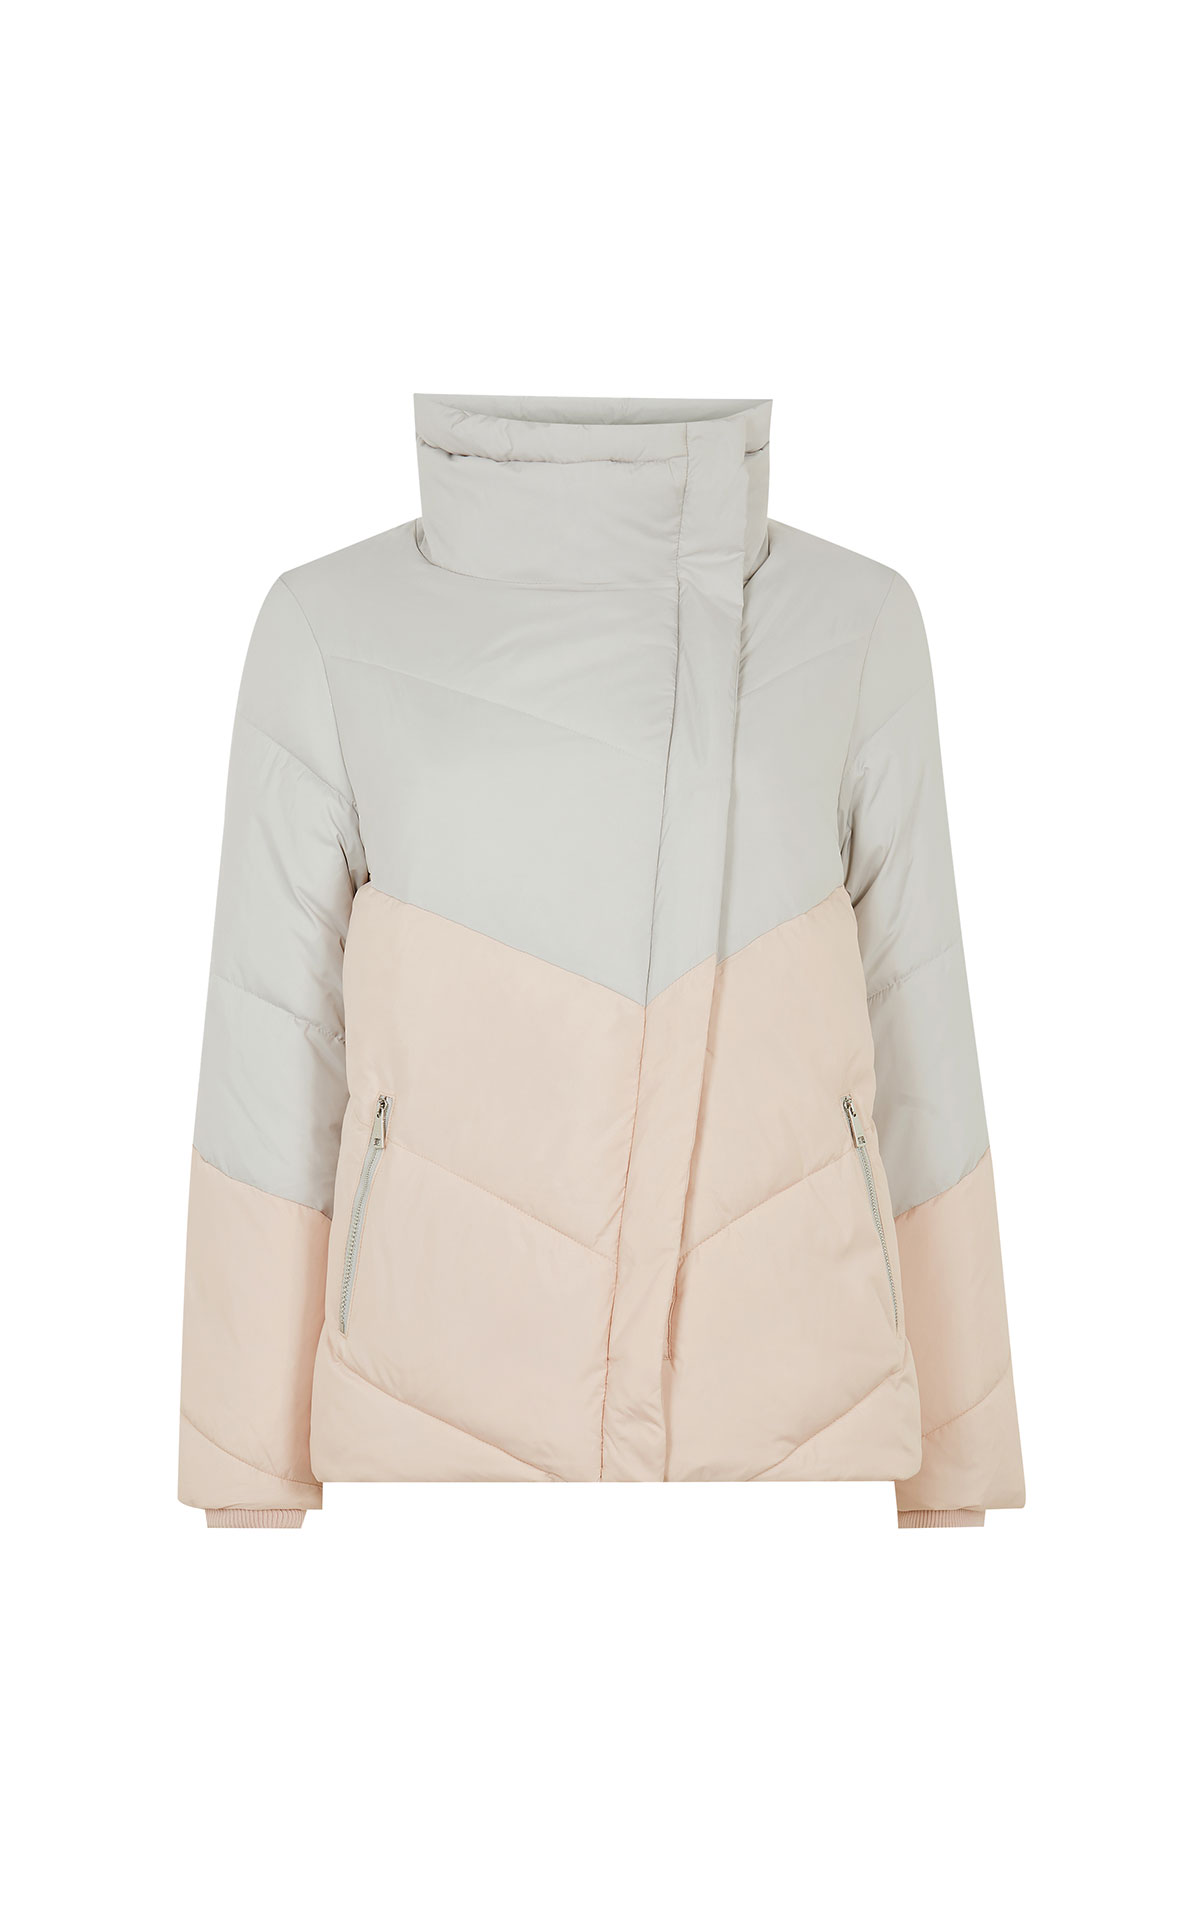 Ted Baker Bubs grey wrap padded jacket from Bicester Village